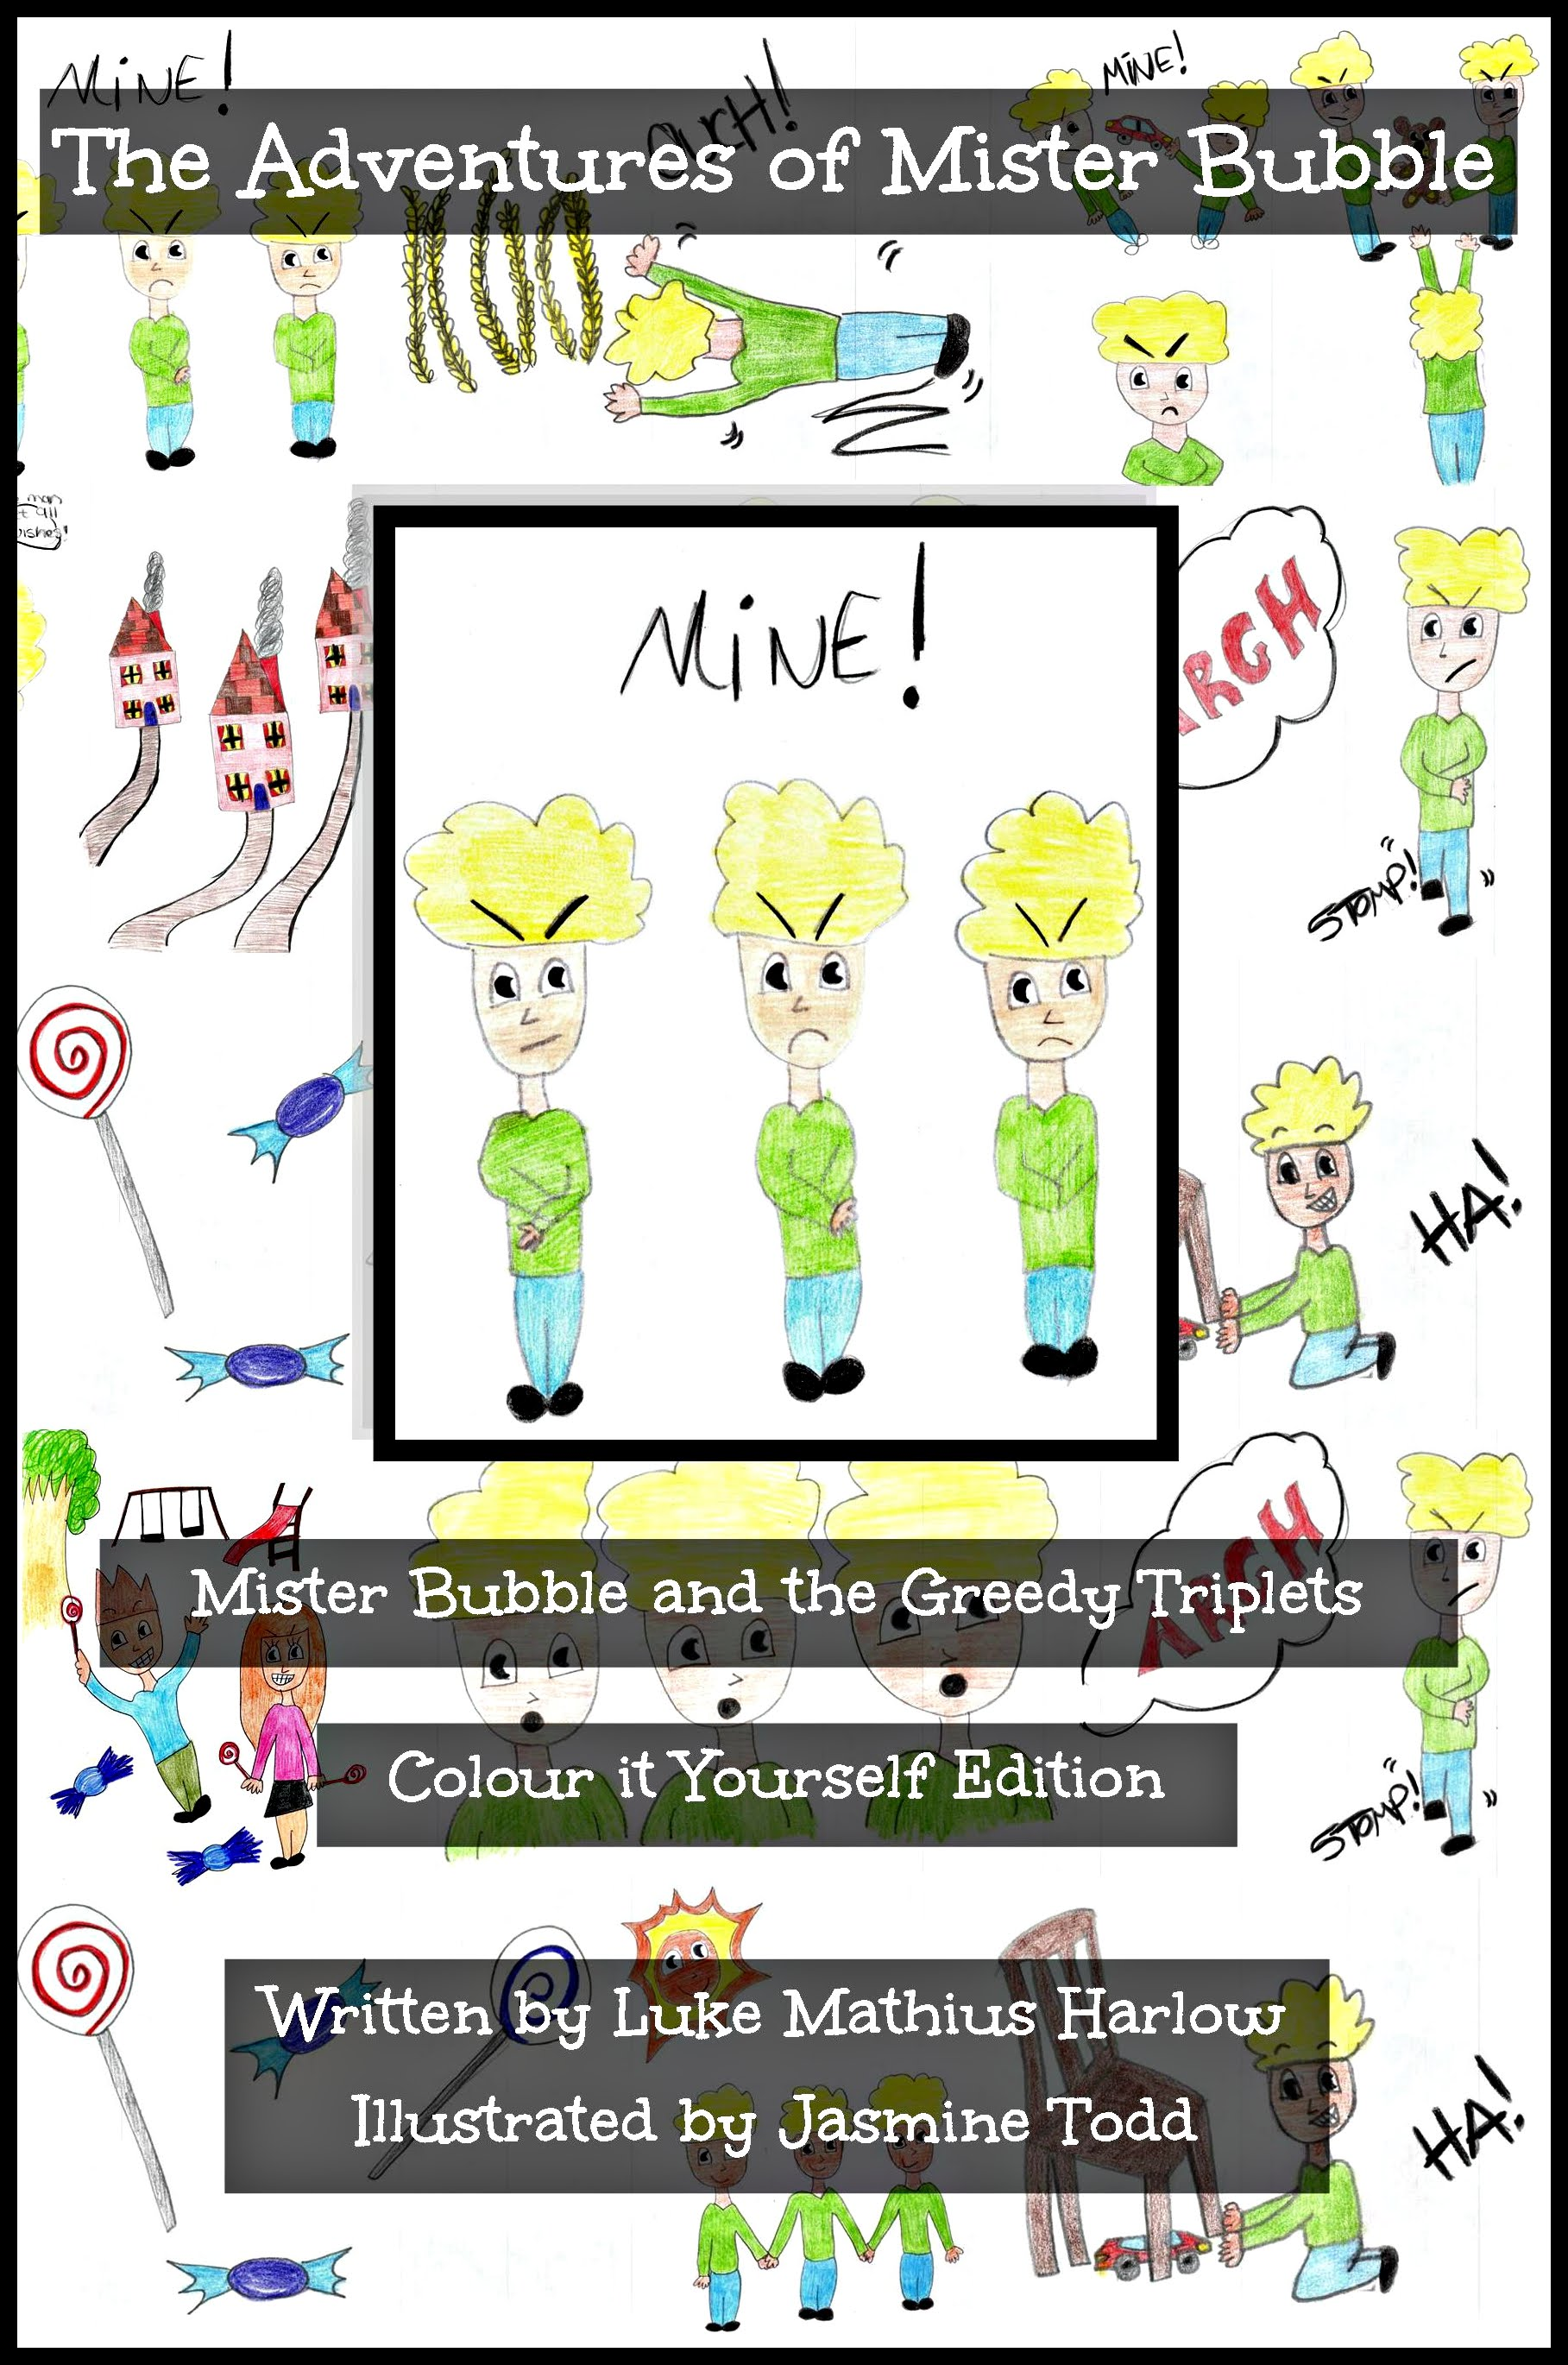 http://www.amazon.co.uk/Adventures-Mister-Bubble-Triplets-Yourself/dp/1517198542/ref=sr_1_9?ie=UTF8&qid=1441449051&sr=8-9&keywords=luke+mathius+harlow